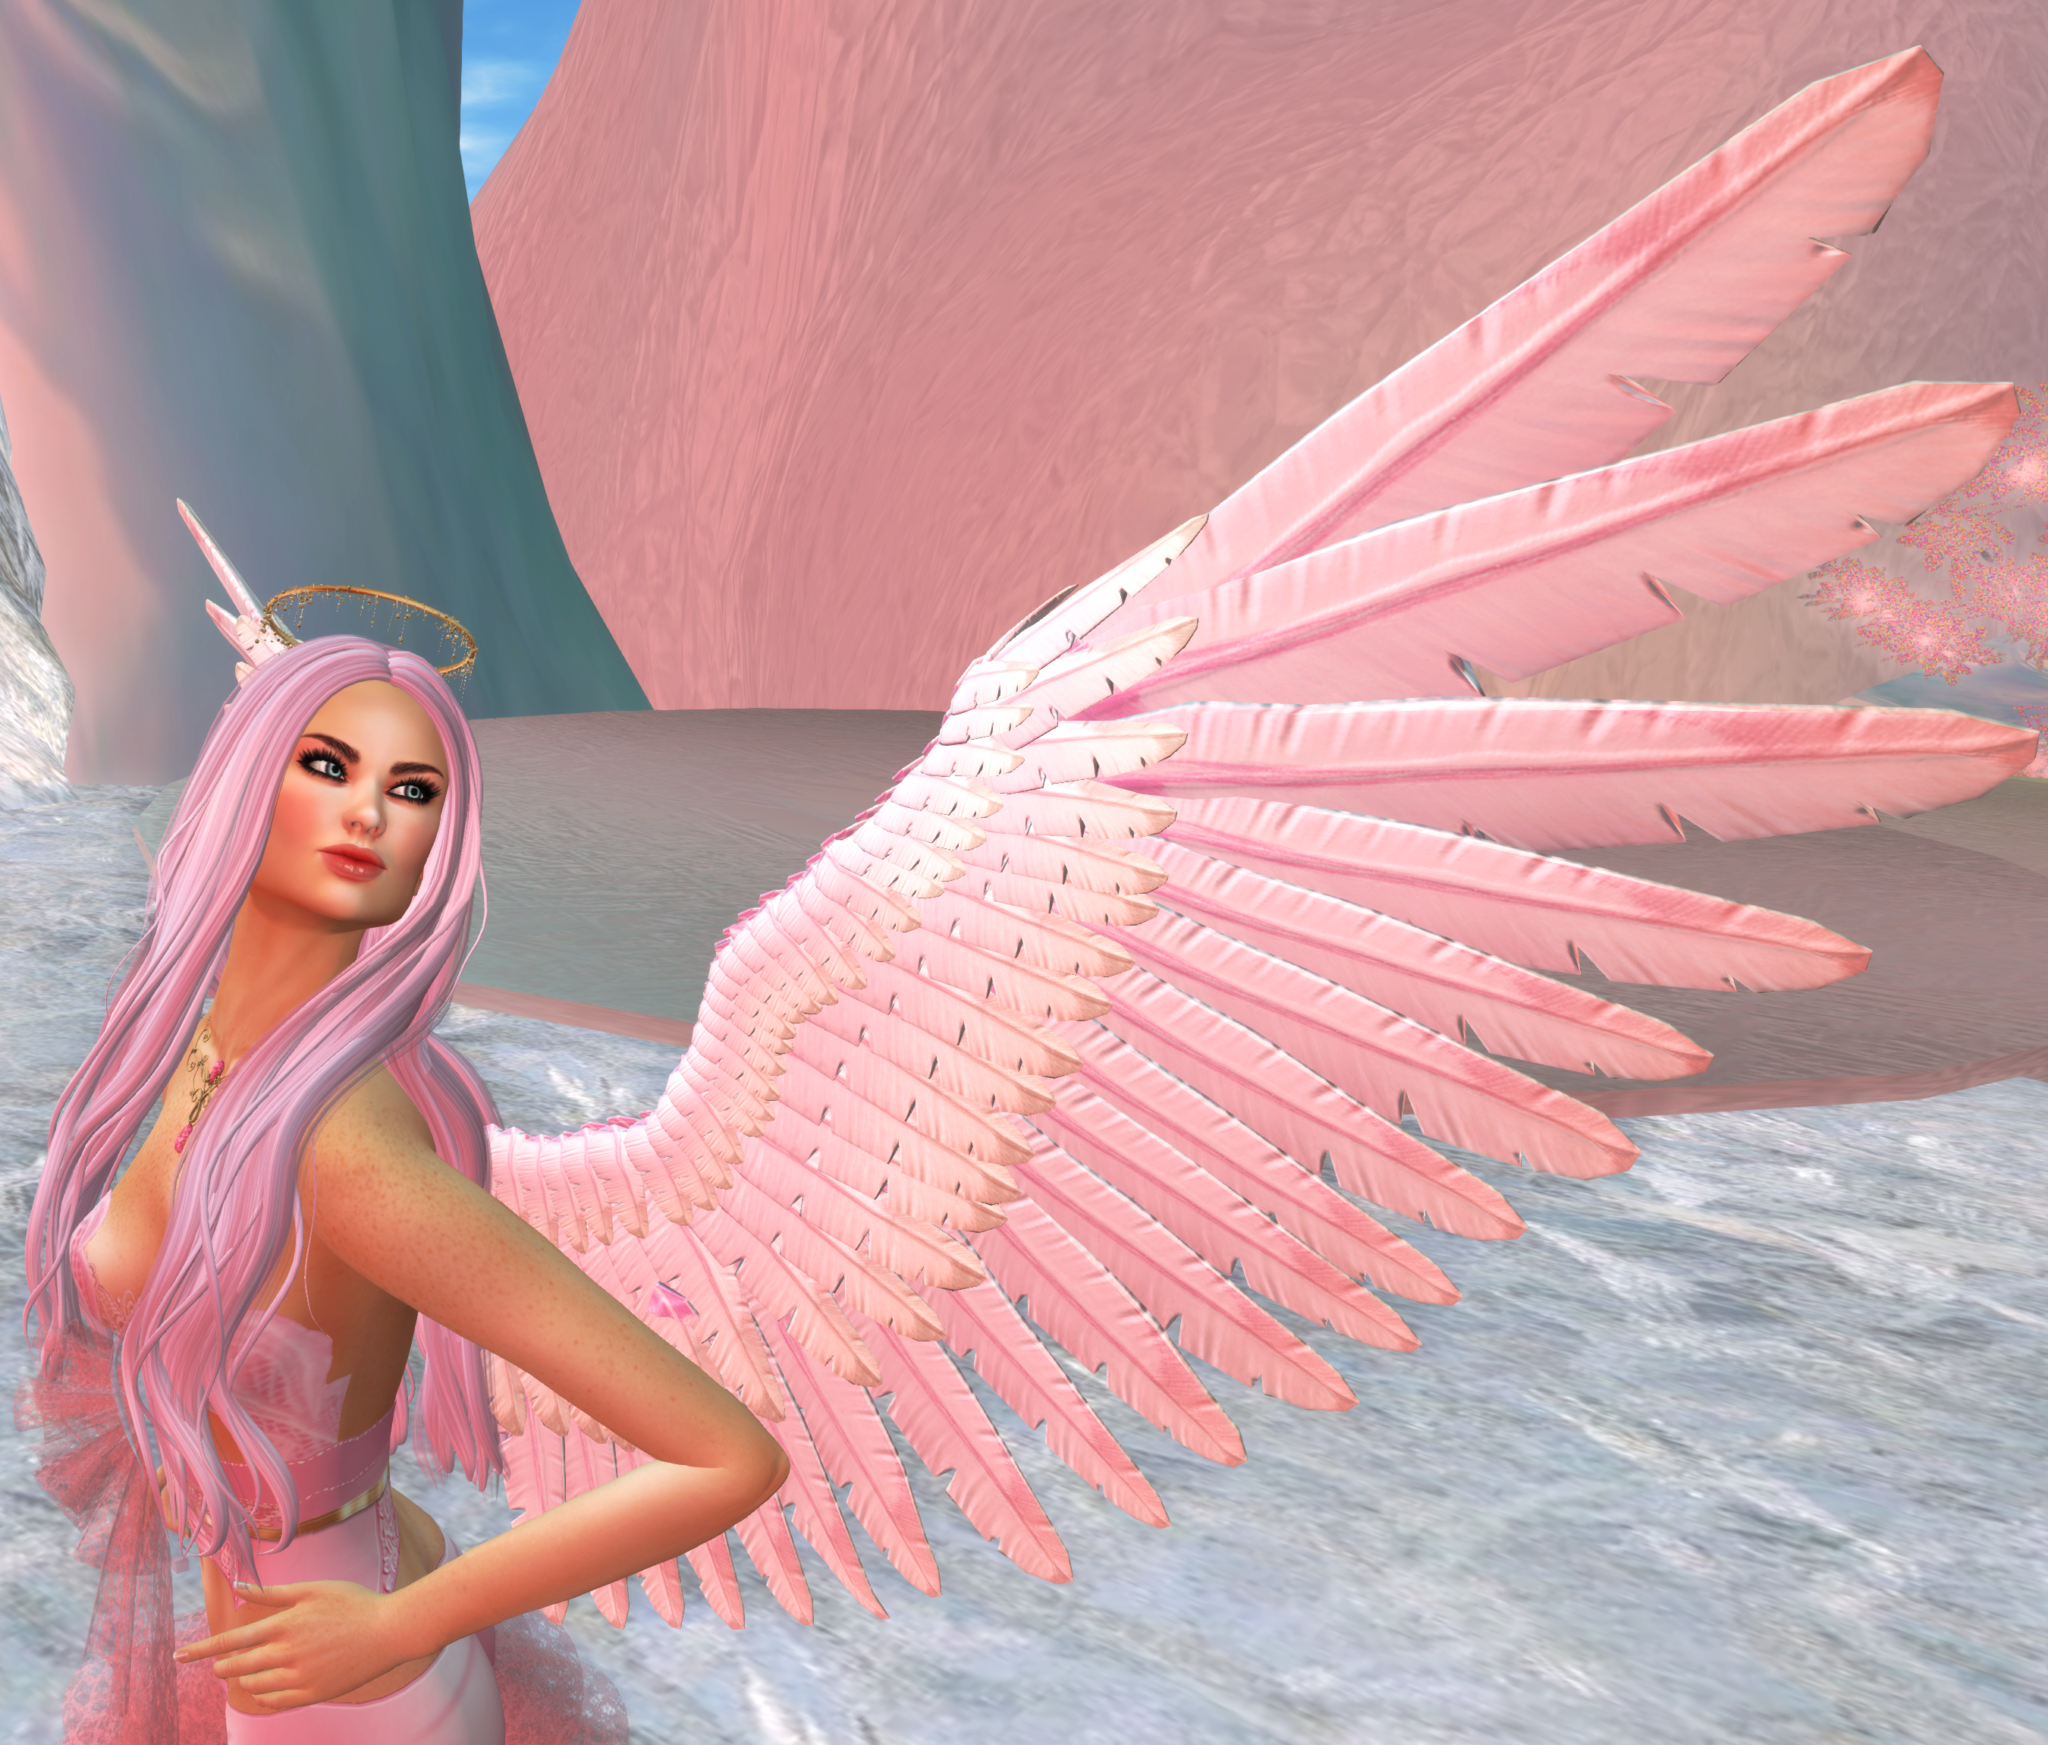 A Second Life angel avatar shows off her pink wings.